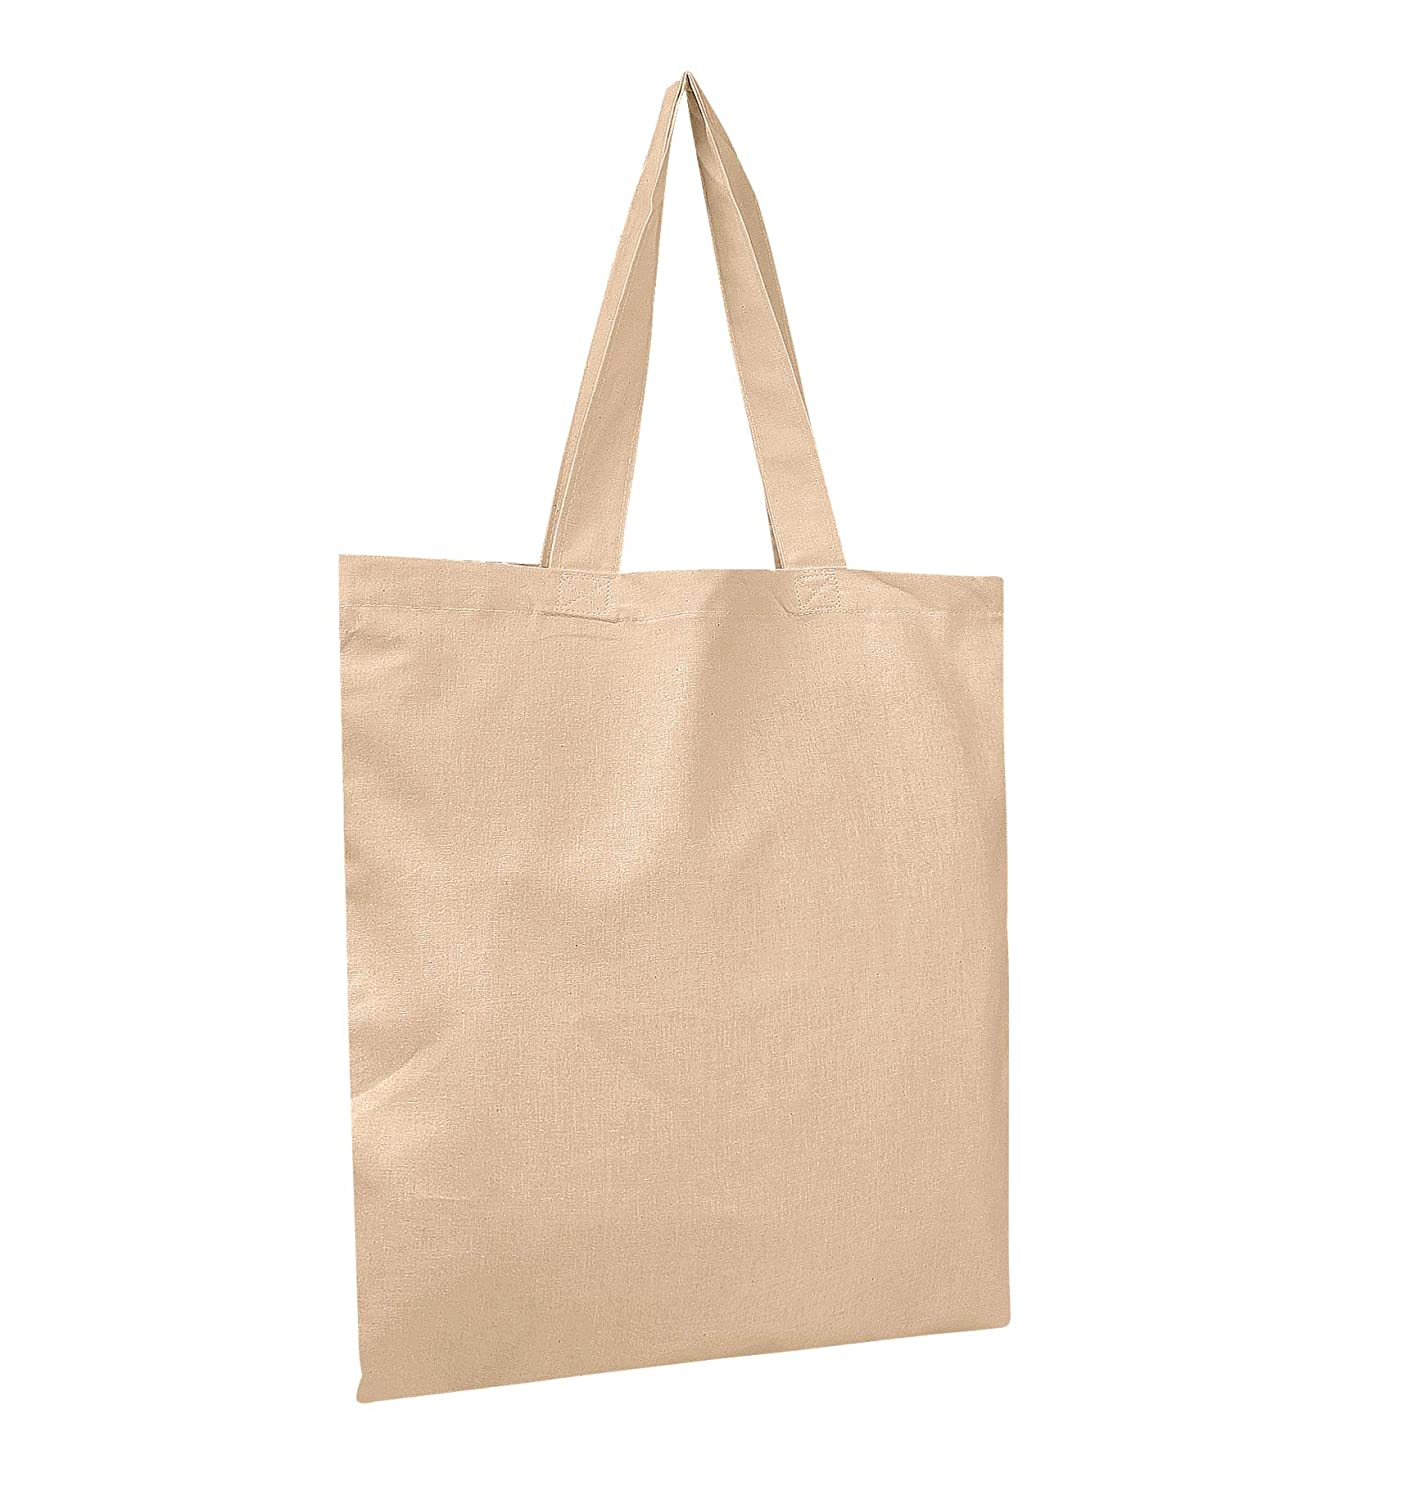 0766ee7f3 Amazon.com: BagzDepot Canvas Tote Bags Wholesale - 12 Pack - Grocery Cotton  Tote Bags in Bulk, Reusable Bags for Decorating Crafts Blank Canvas Bags  Events ...